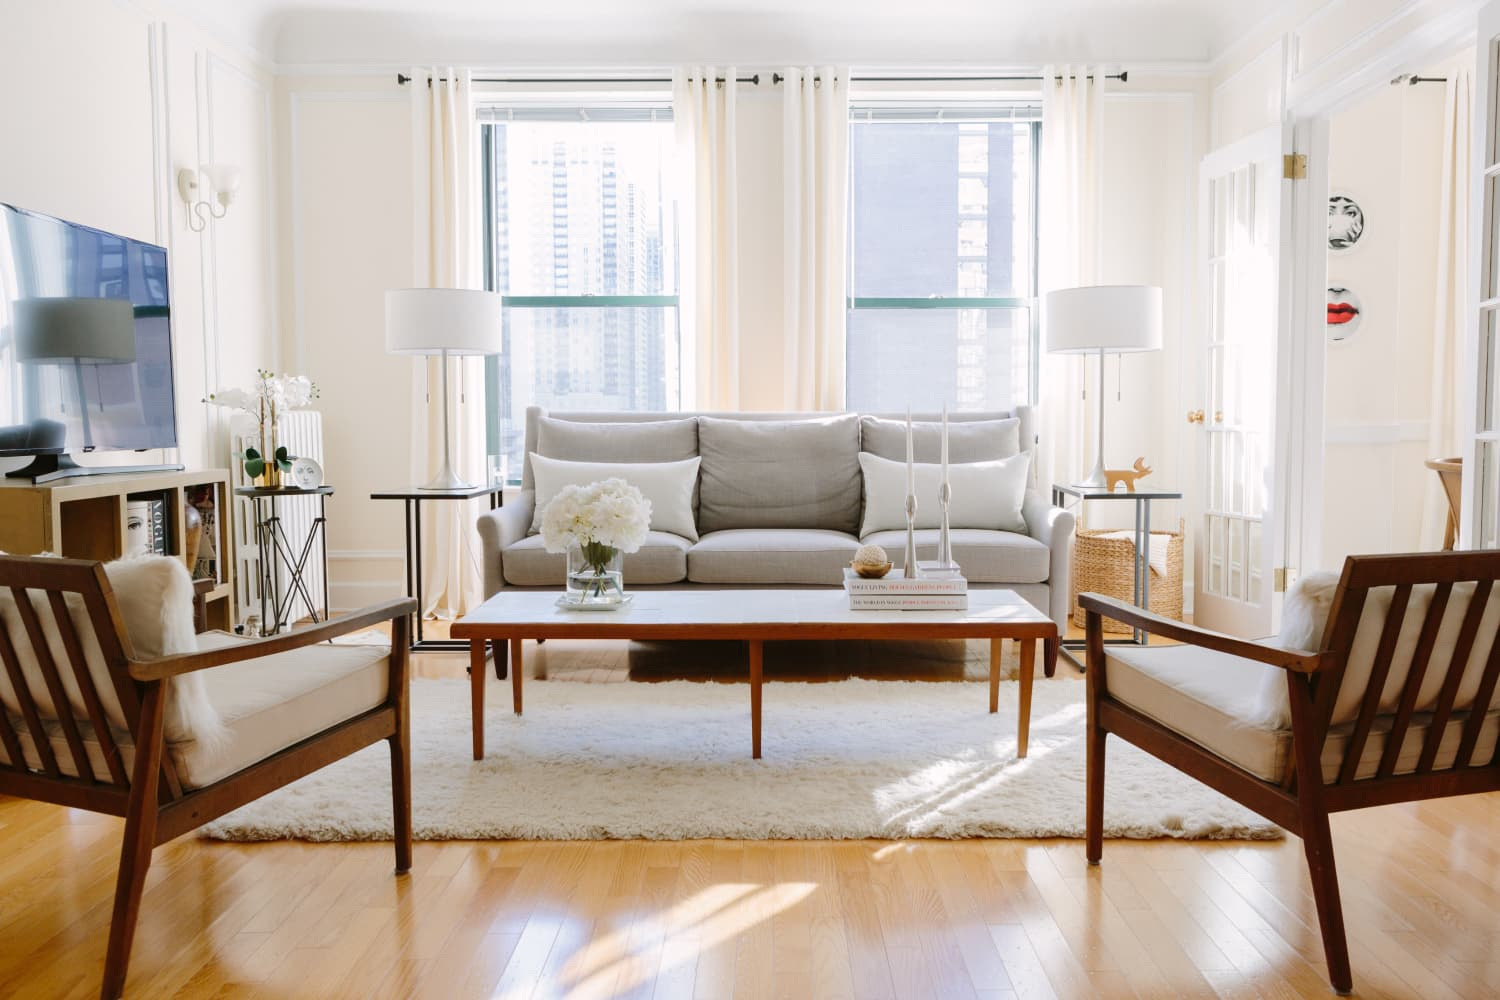 West Elm's Entire Site Is 20% Off Right Now—Here's What We're Buying for the Living Room